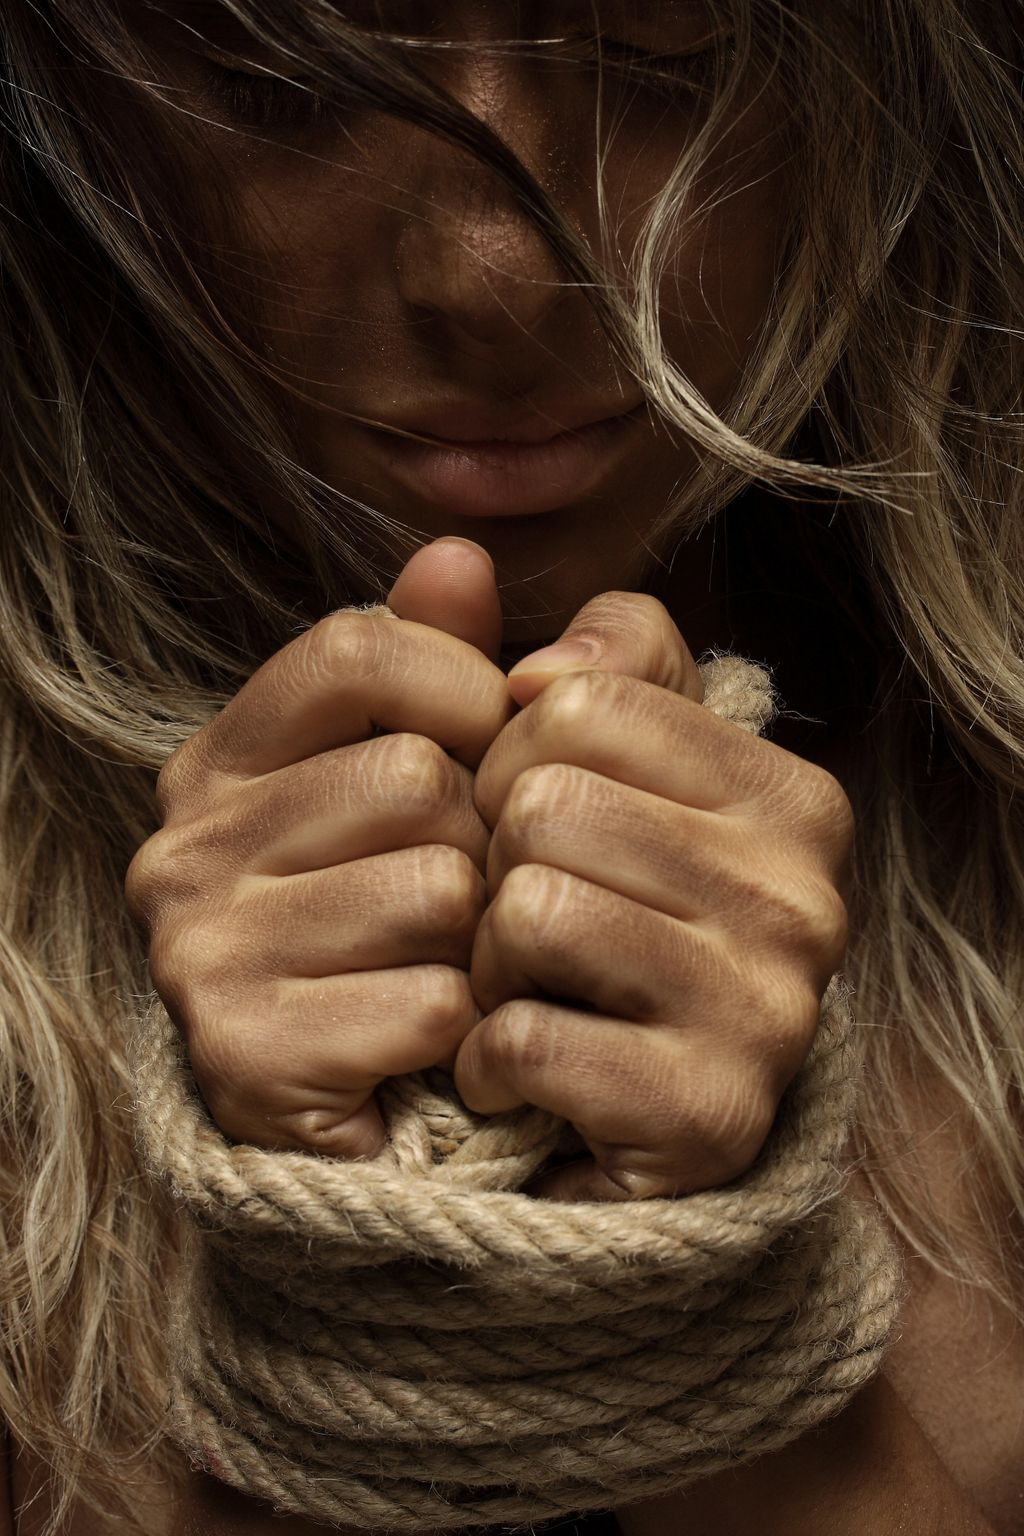 close-up-photo-of-woman-with-her-hands-tied-with-rope-1435441-k3sdskao